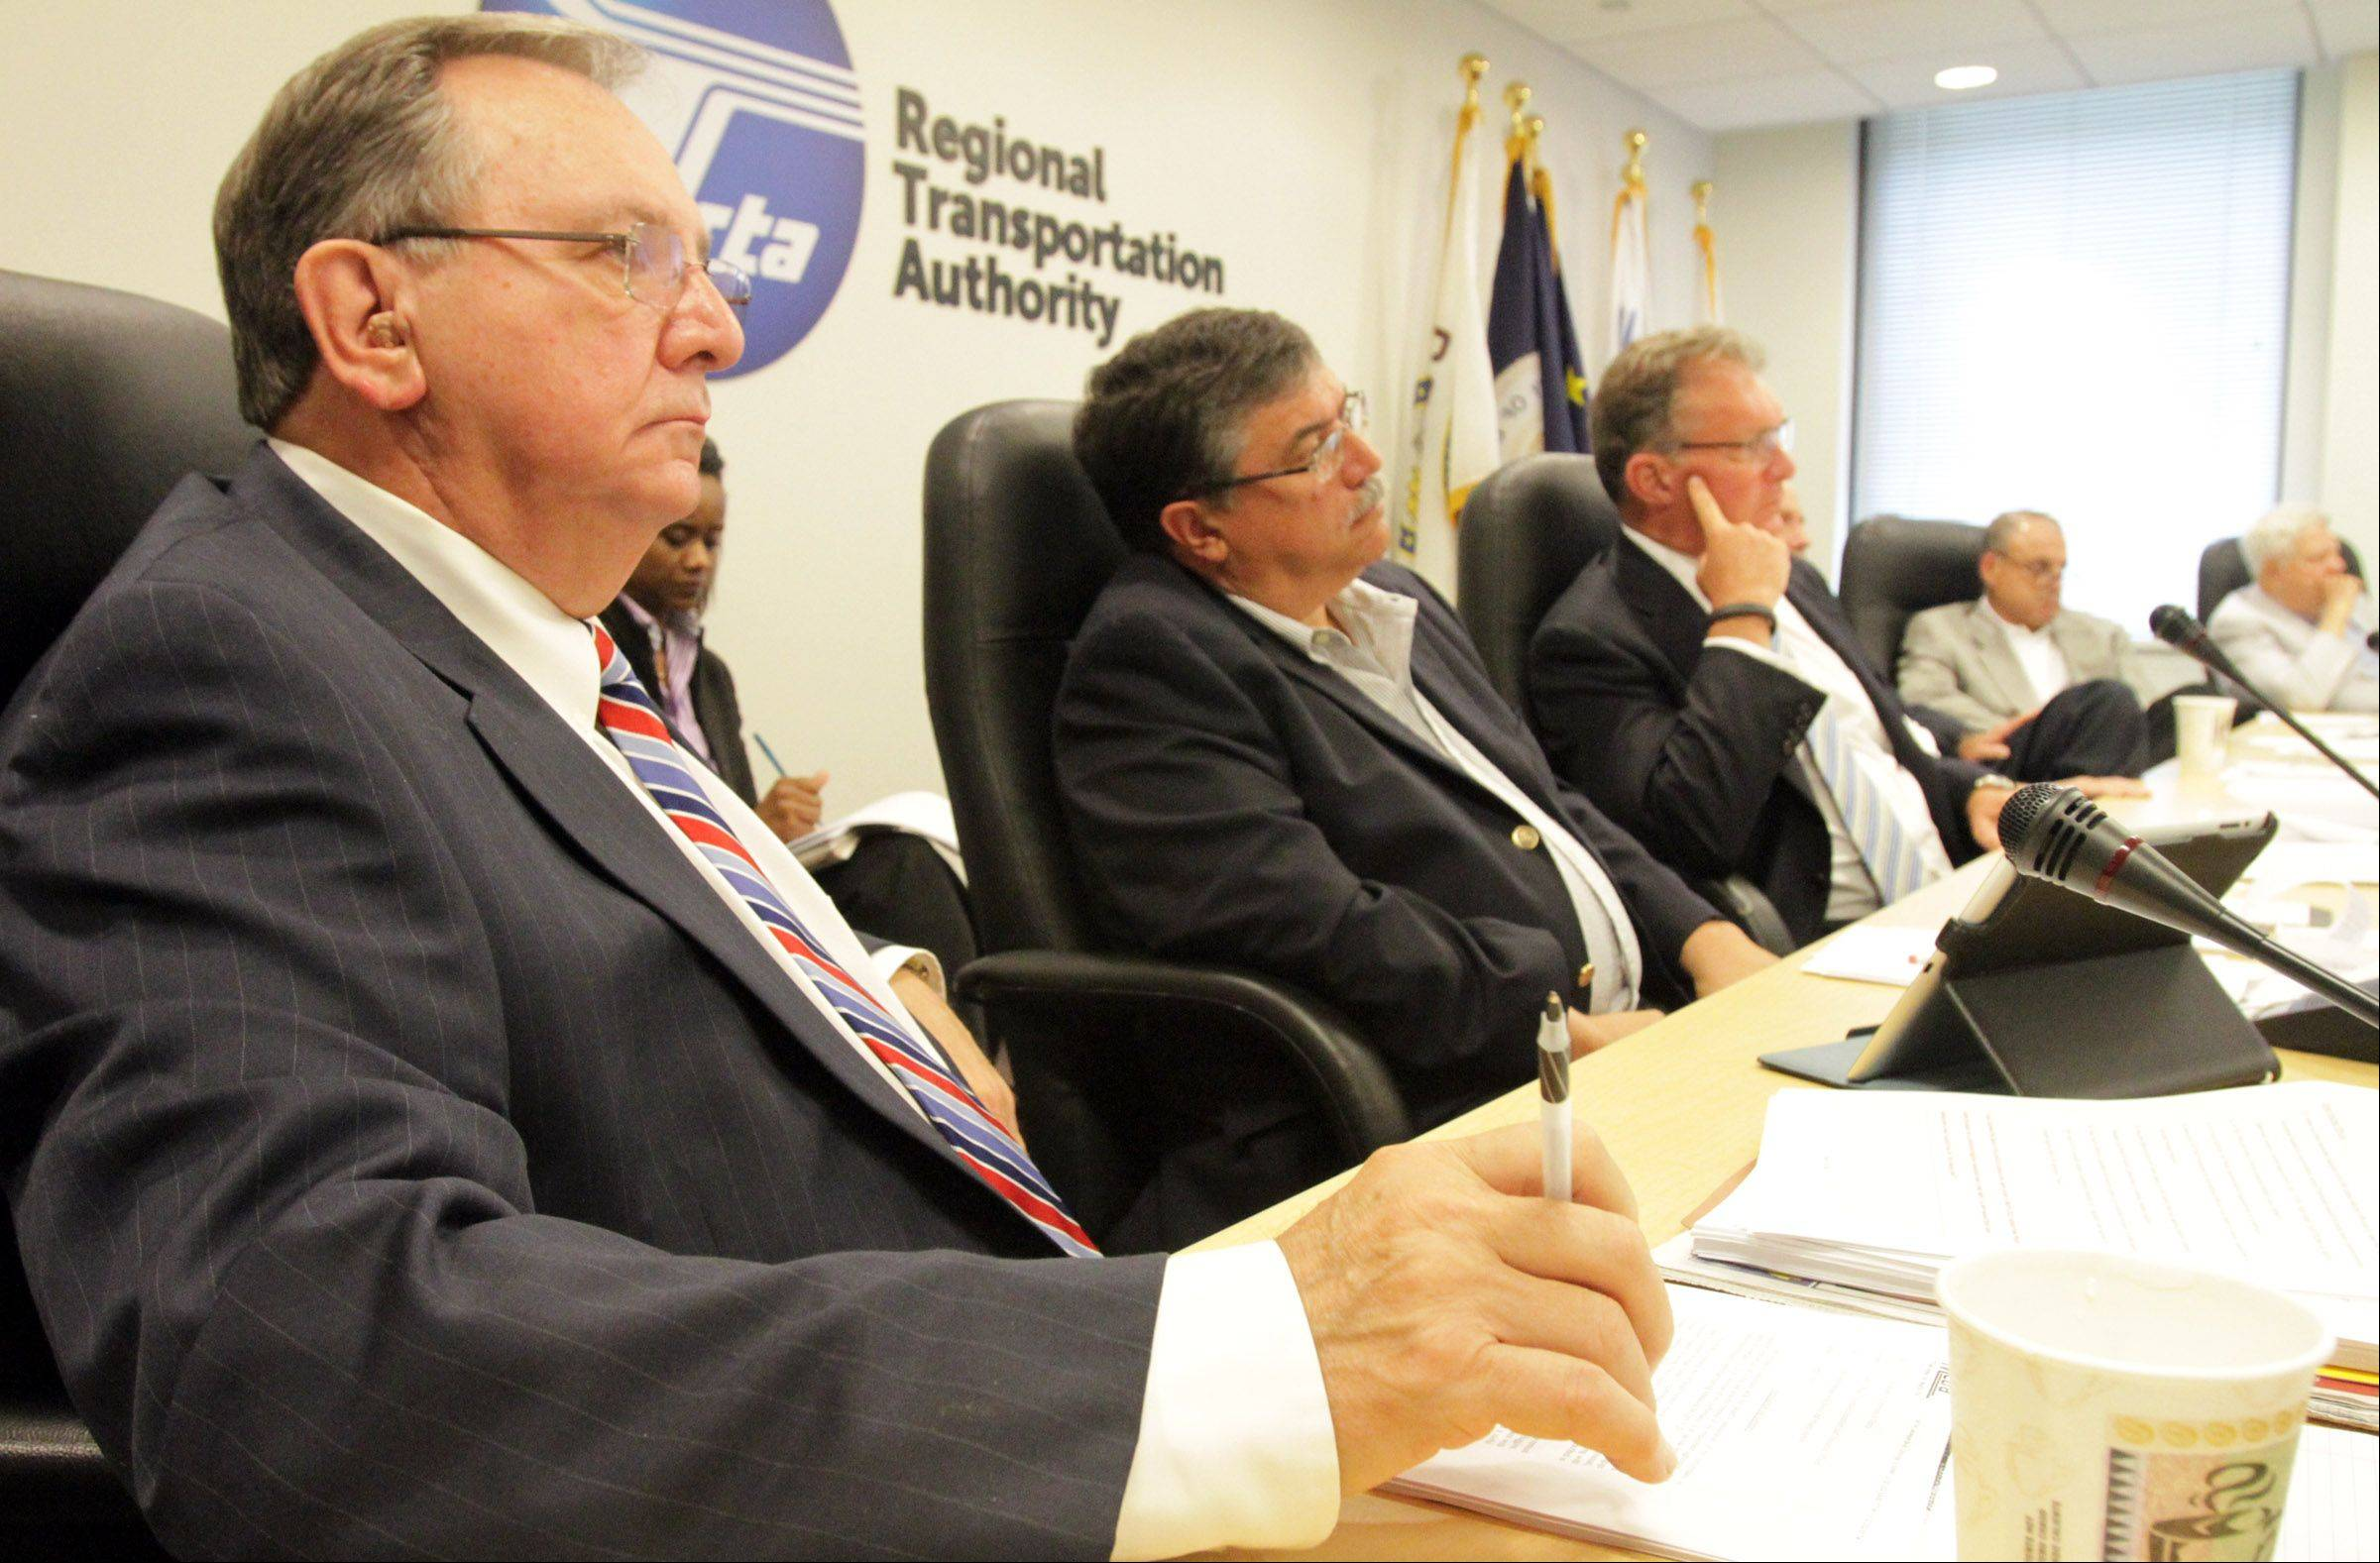 RTA board members, including Patrick Durante, from left, Phil Fuentes, and Chairman John Gates, listen to Former Metra CEO Alex Clifford speak on Wednesday.